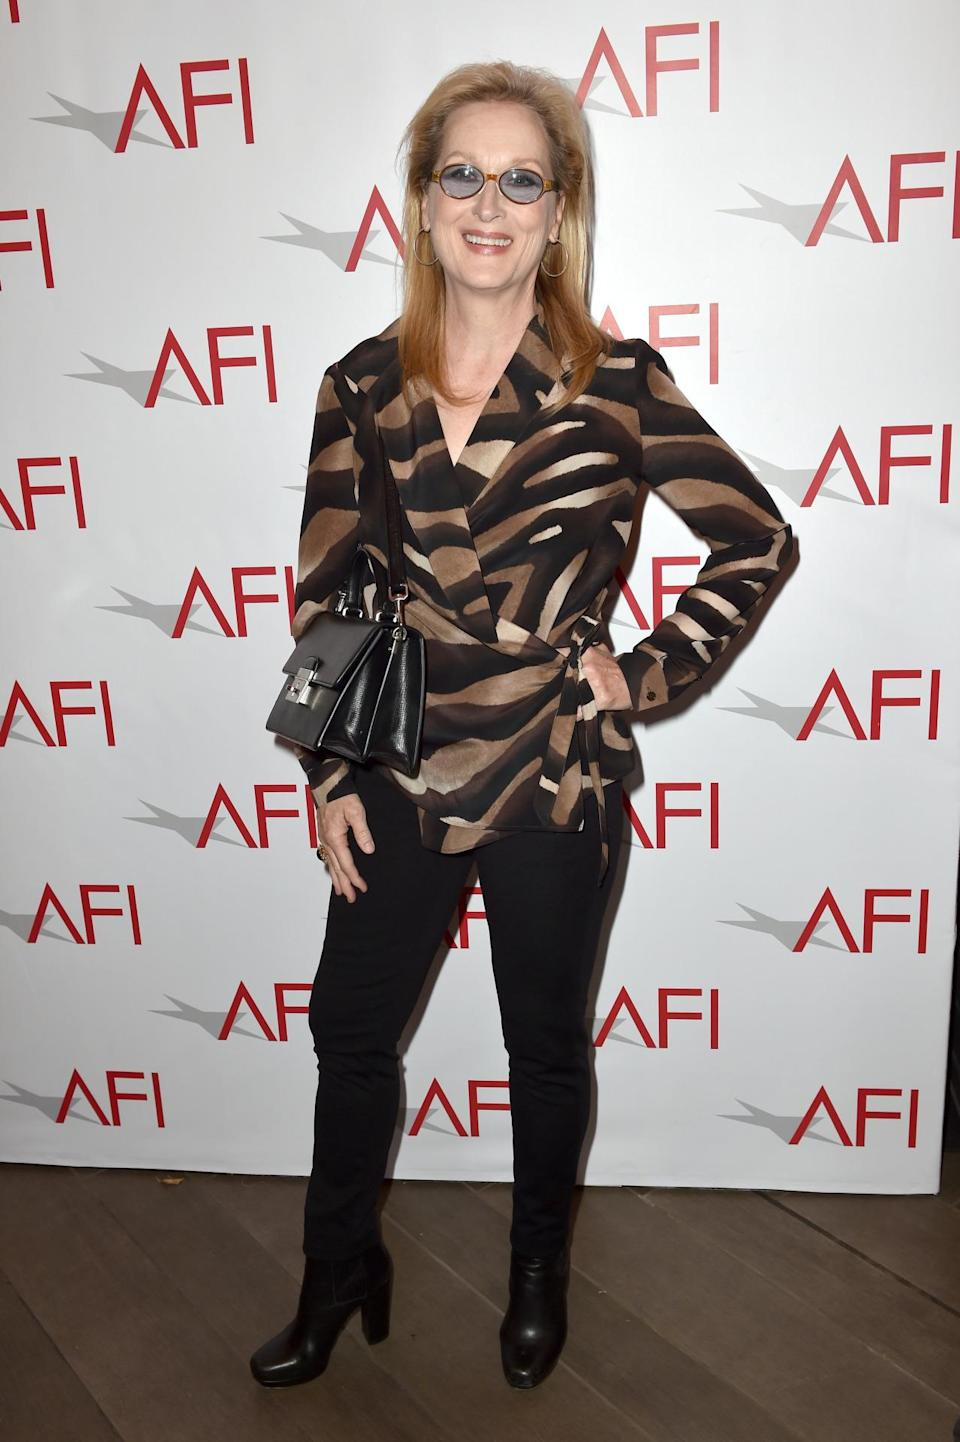 Meryl Streep wore a wrap-around top in animal print with booties and black pants.